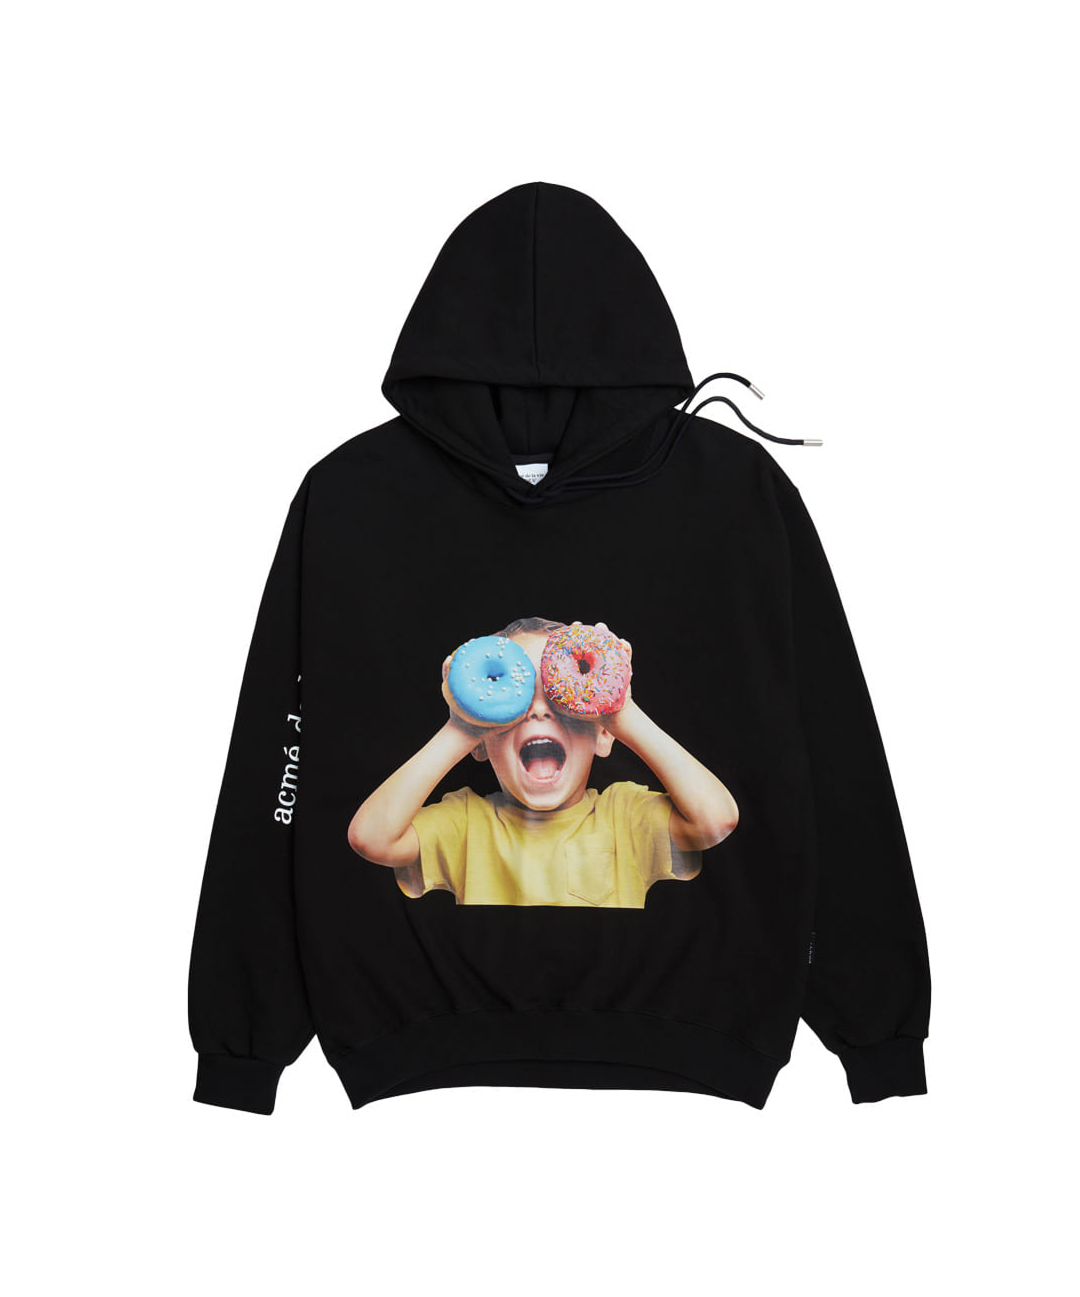 TWICE X ADLV BABY FACE HOODIE BLACK DONUTS 5